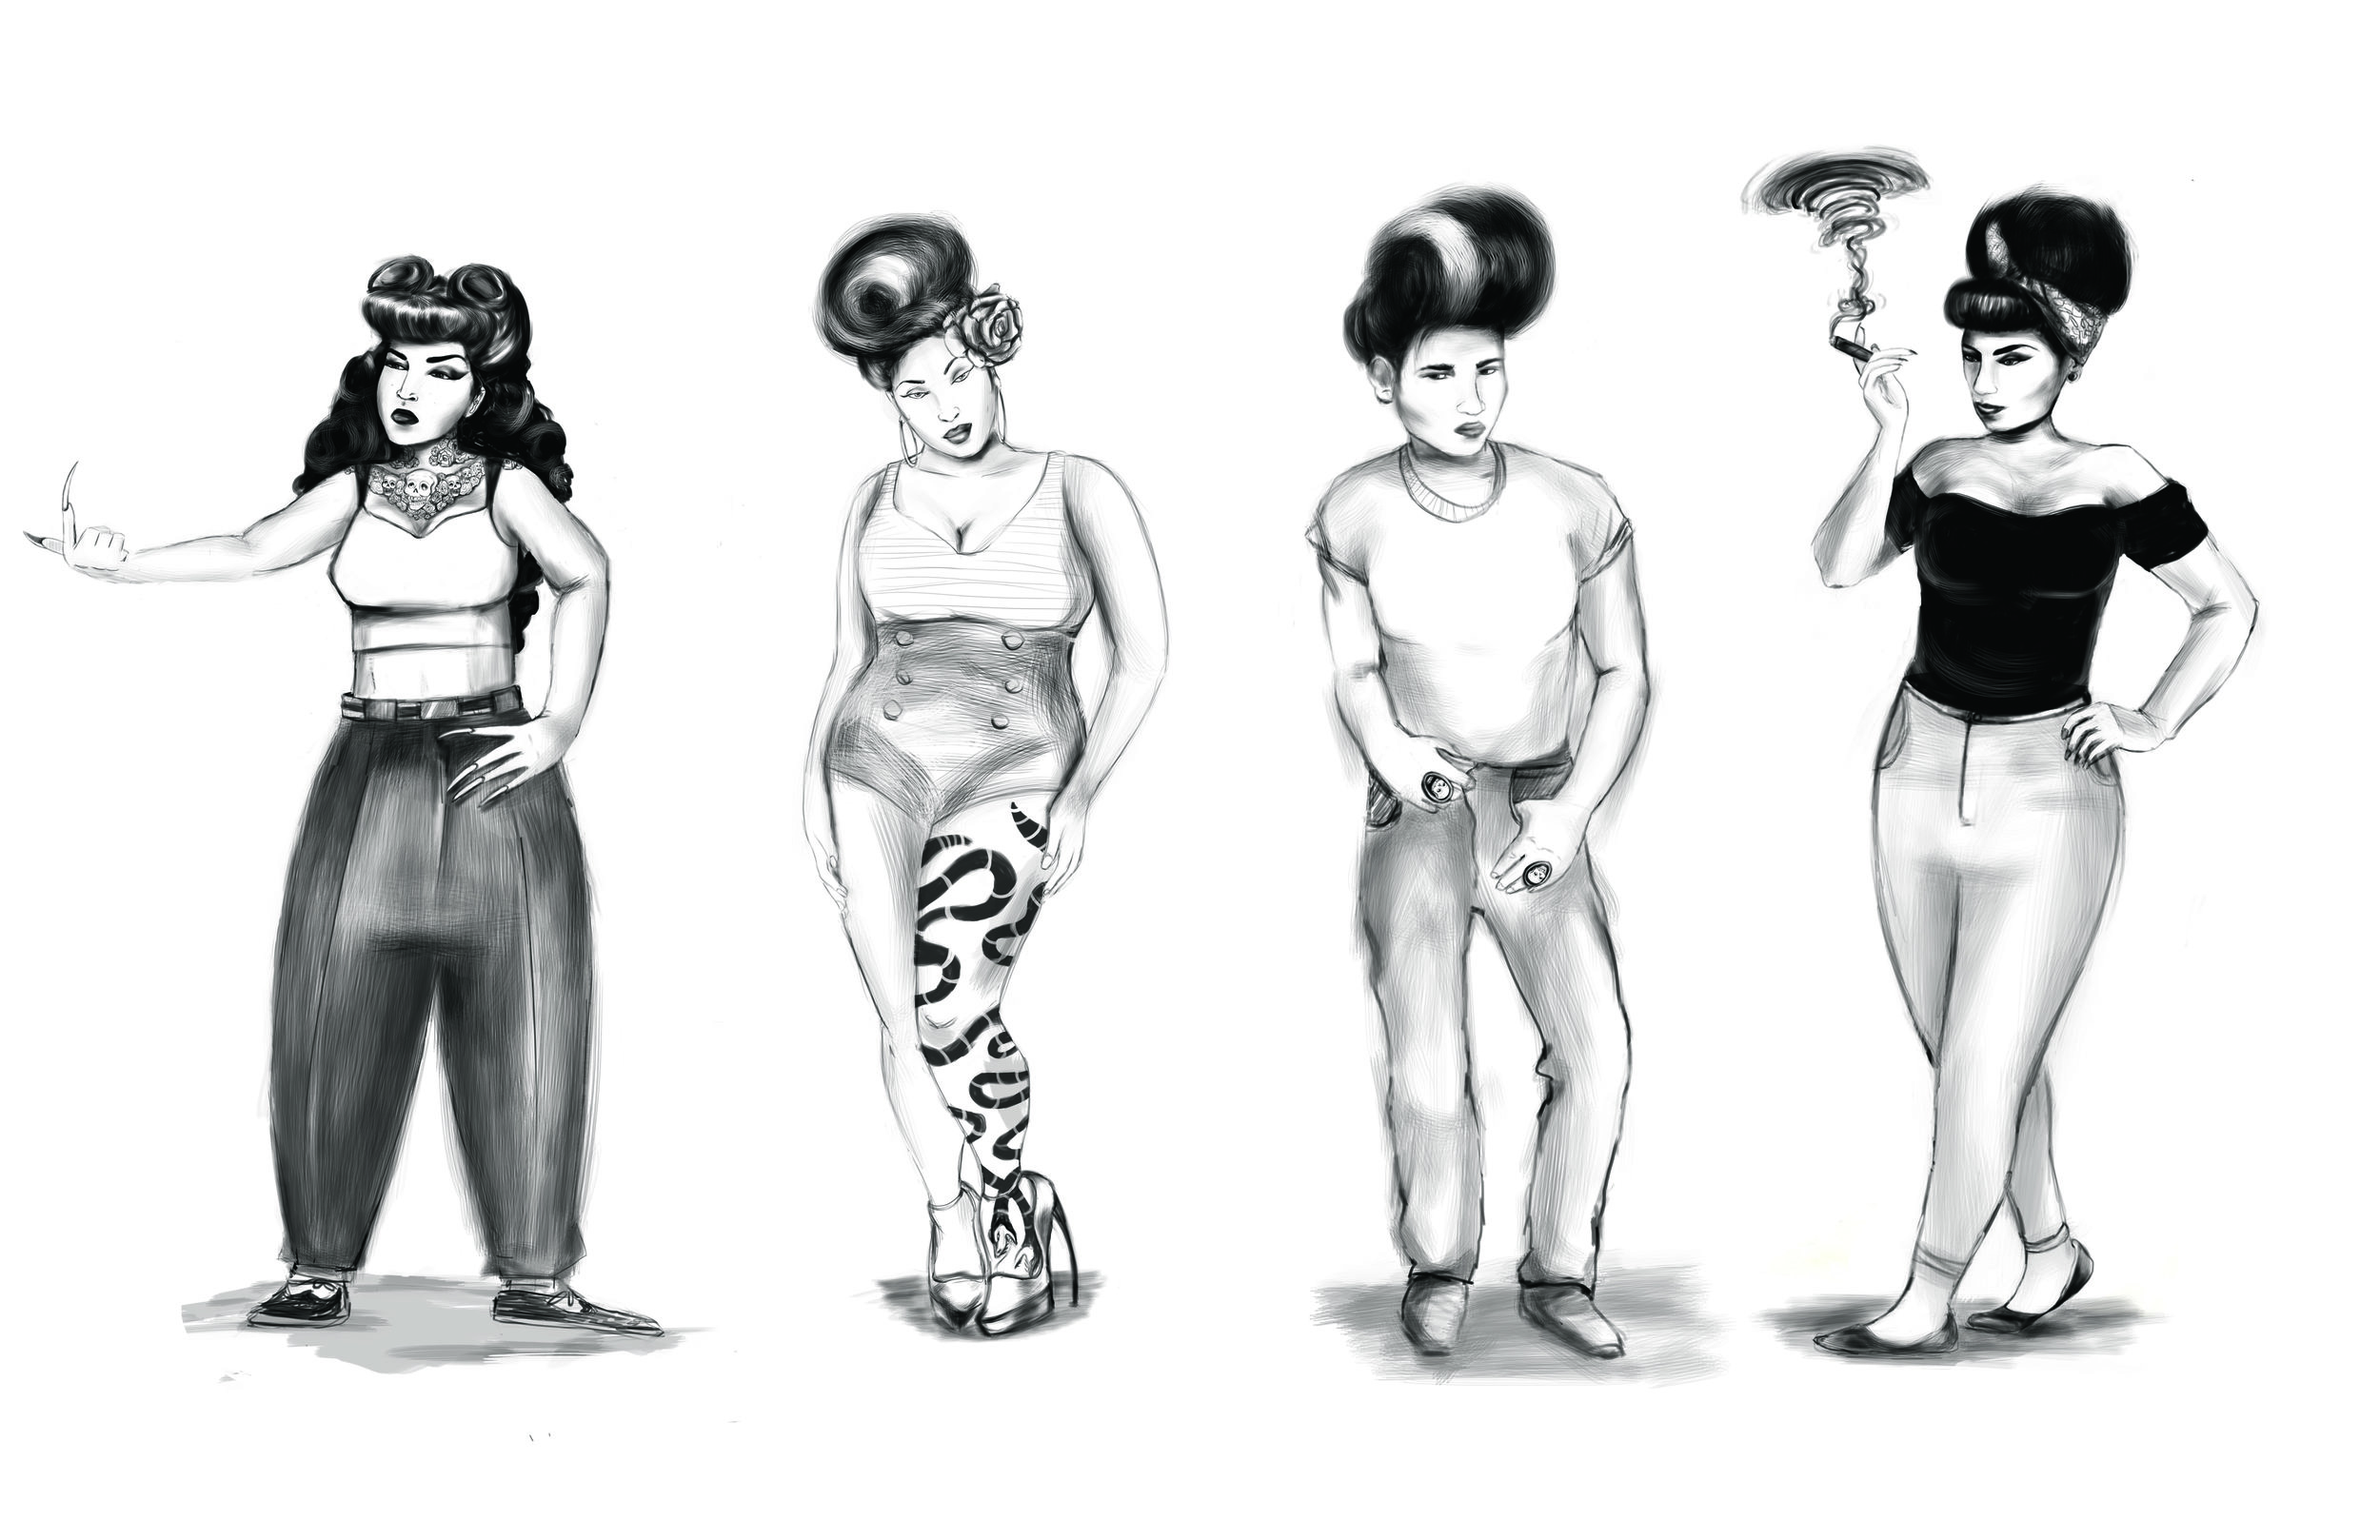 Character lineup for story in development by Dir. Aurora Guerrero